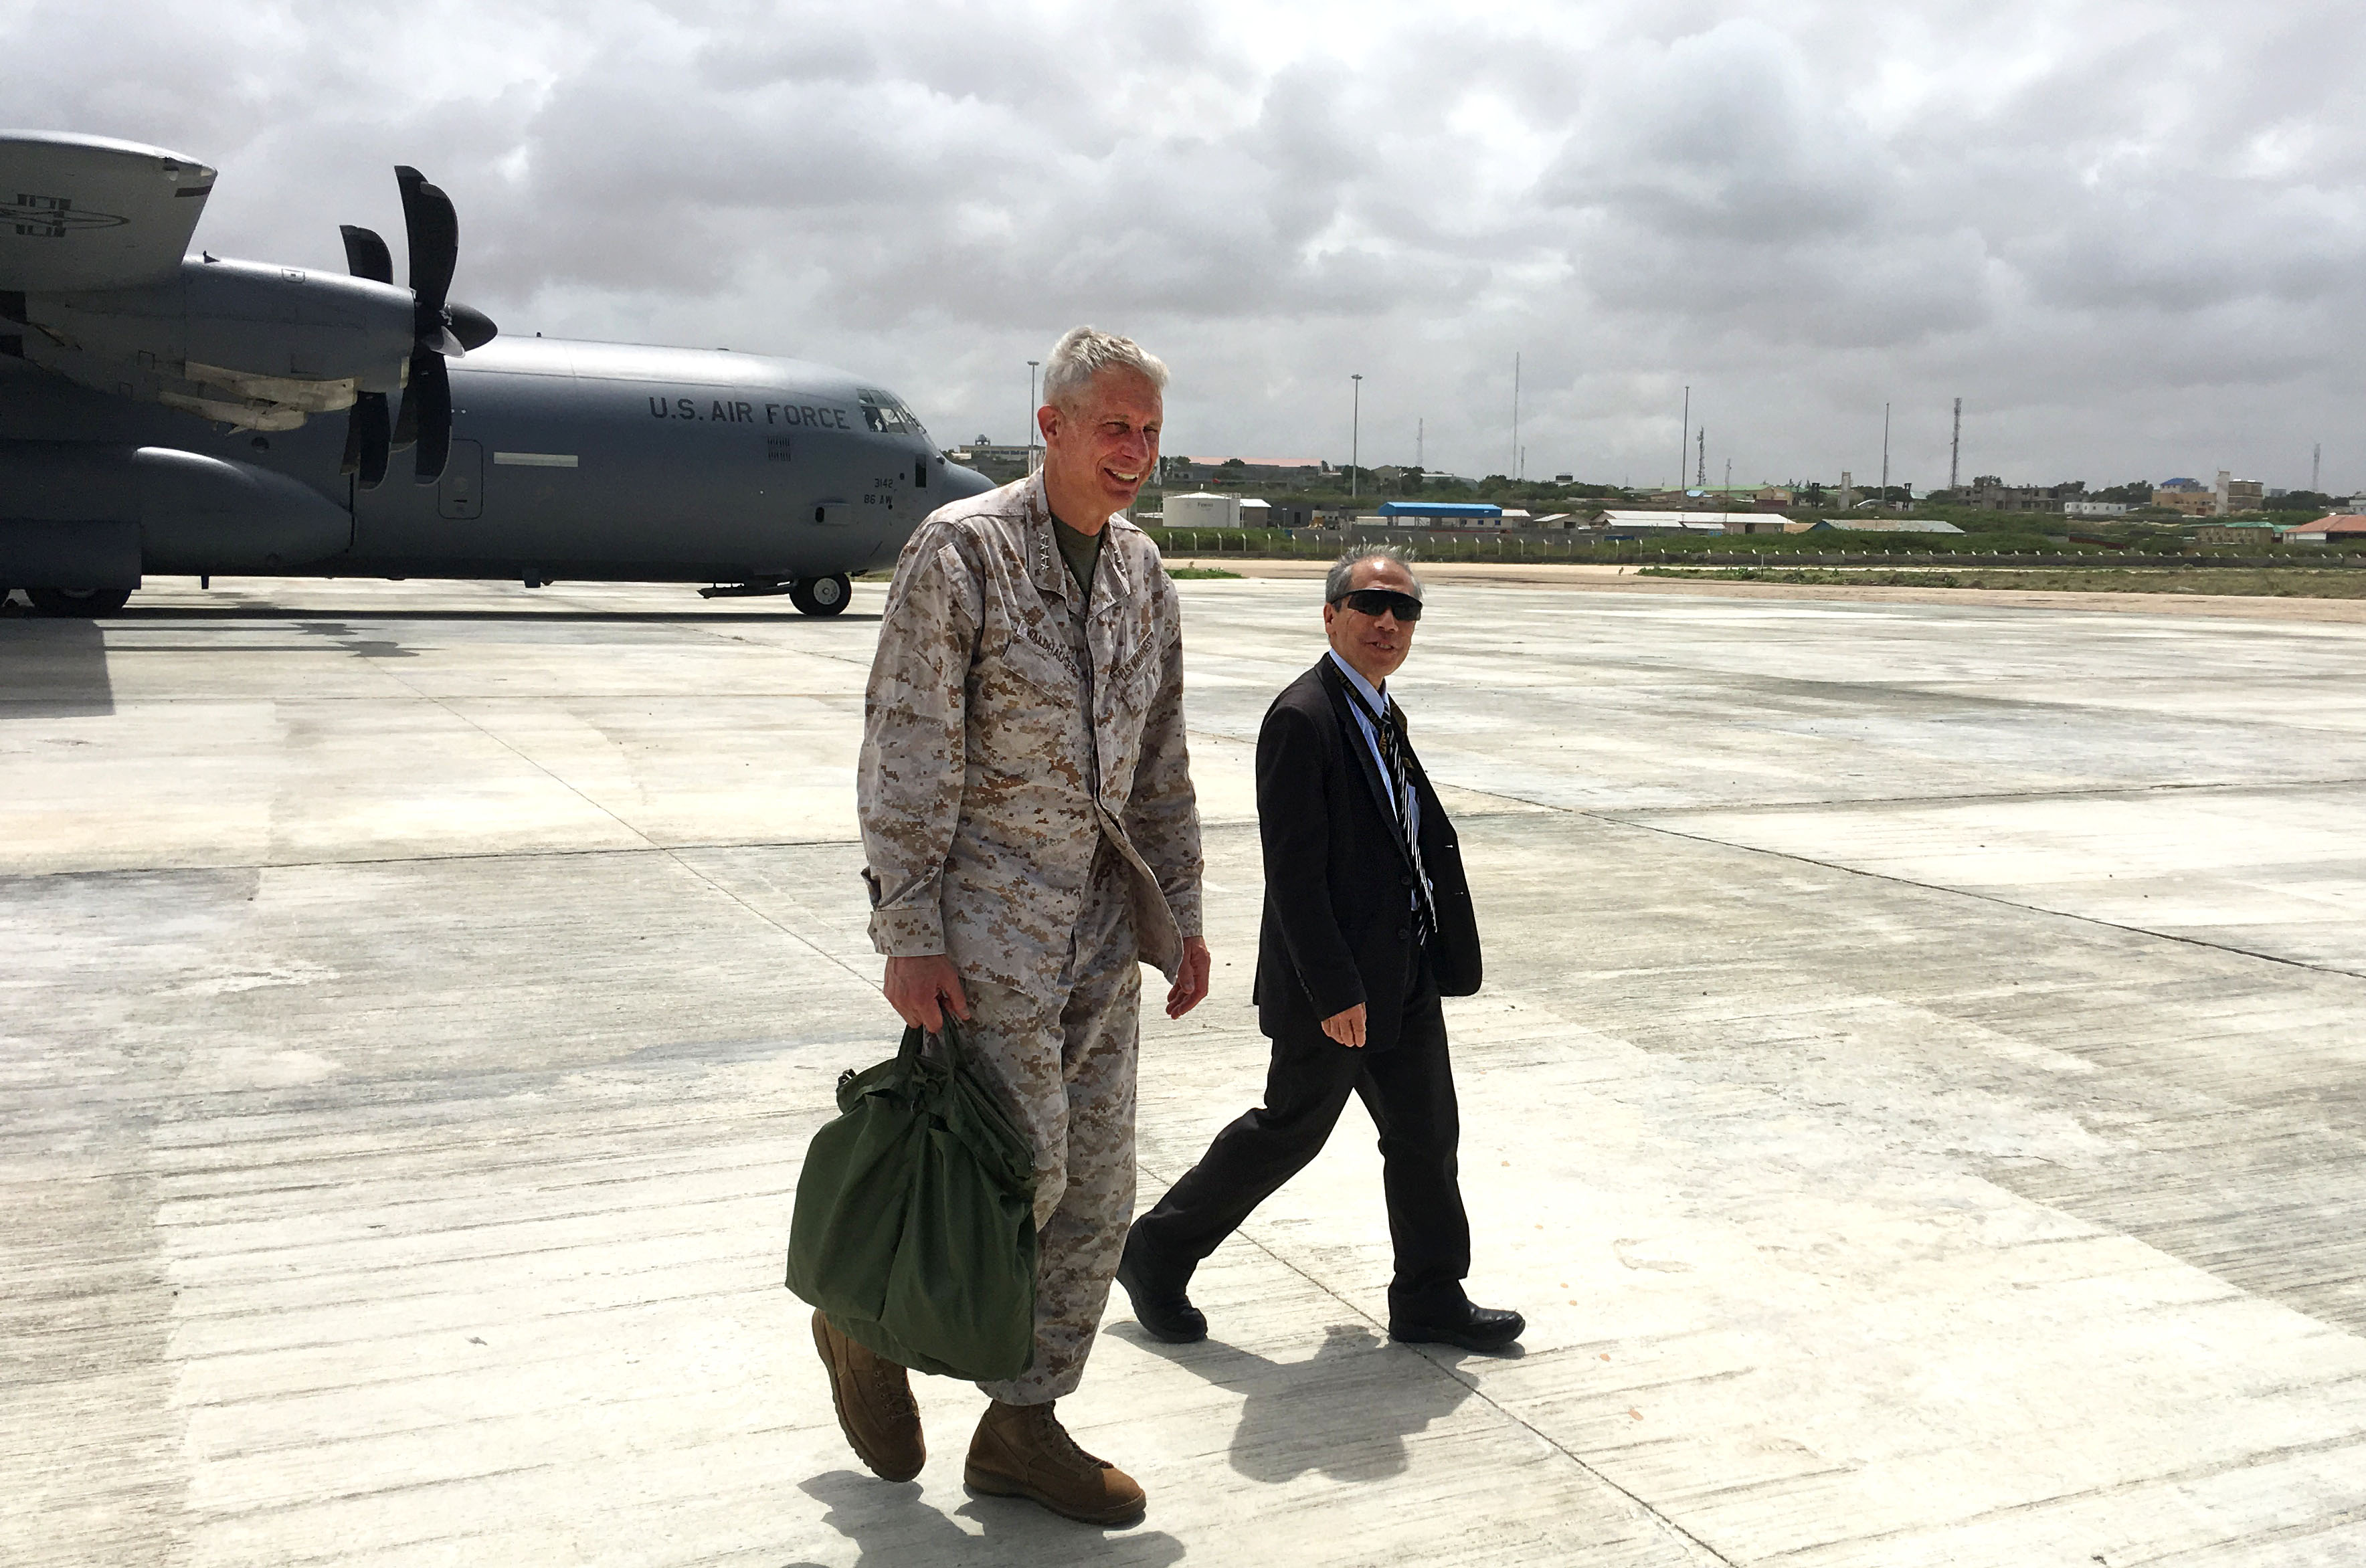 Ambassador Donald Yamamoto, U.S. Ambassador to Somalia, greets U.S. Marine Corps Gen. Thomas D. Waldhauser, commander, U.S. Africa Command during a visit June 11, 2019 in Mogadishu, Somalia. During the trip, Waldhauser and Yamamoto met with Prime Minister Hassan Ali Khaire and key Somali defense officials.